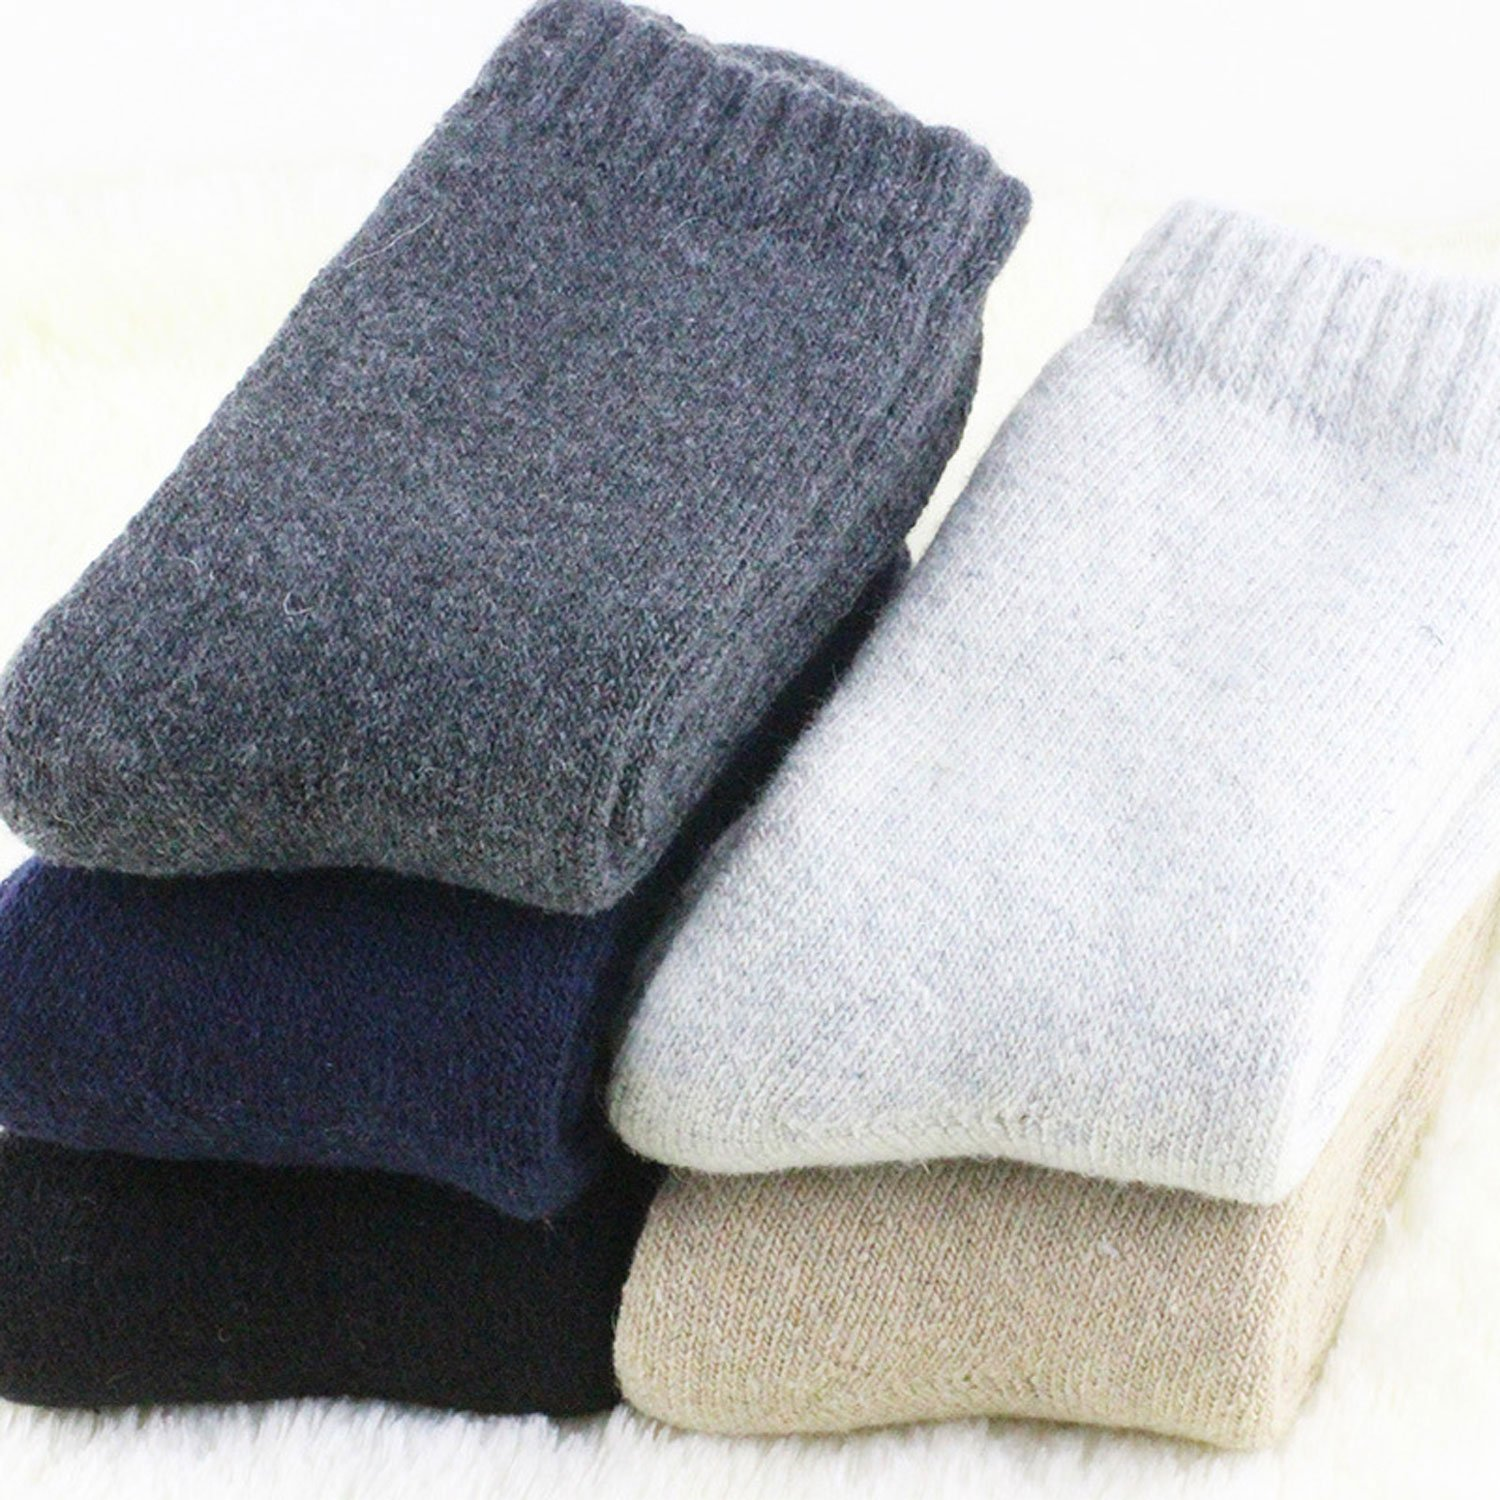 Amazon.com: Wool Socks Men Full Terry Winter Warm Calcetines Deporte Colorful Thick Mens Socks 552w (Navy): Clothing